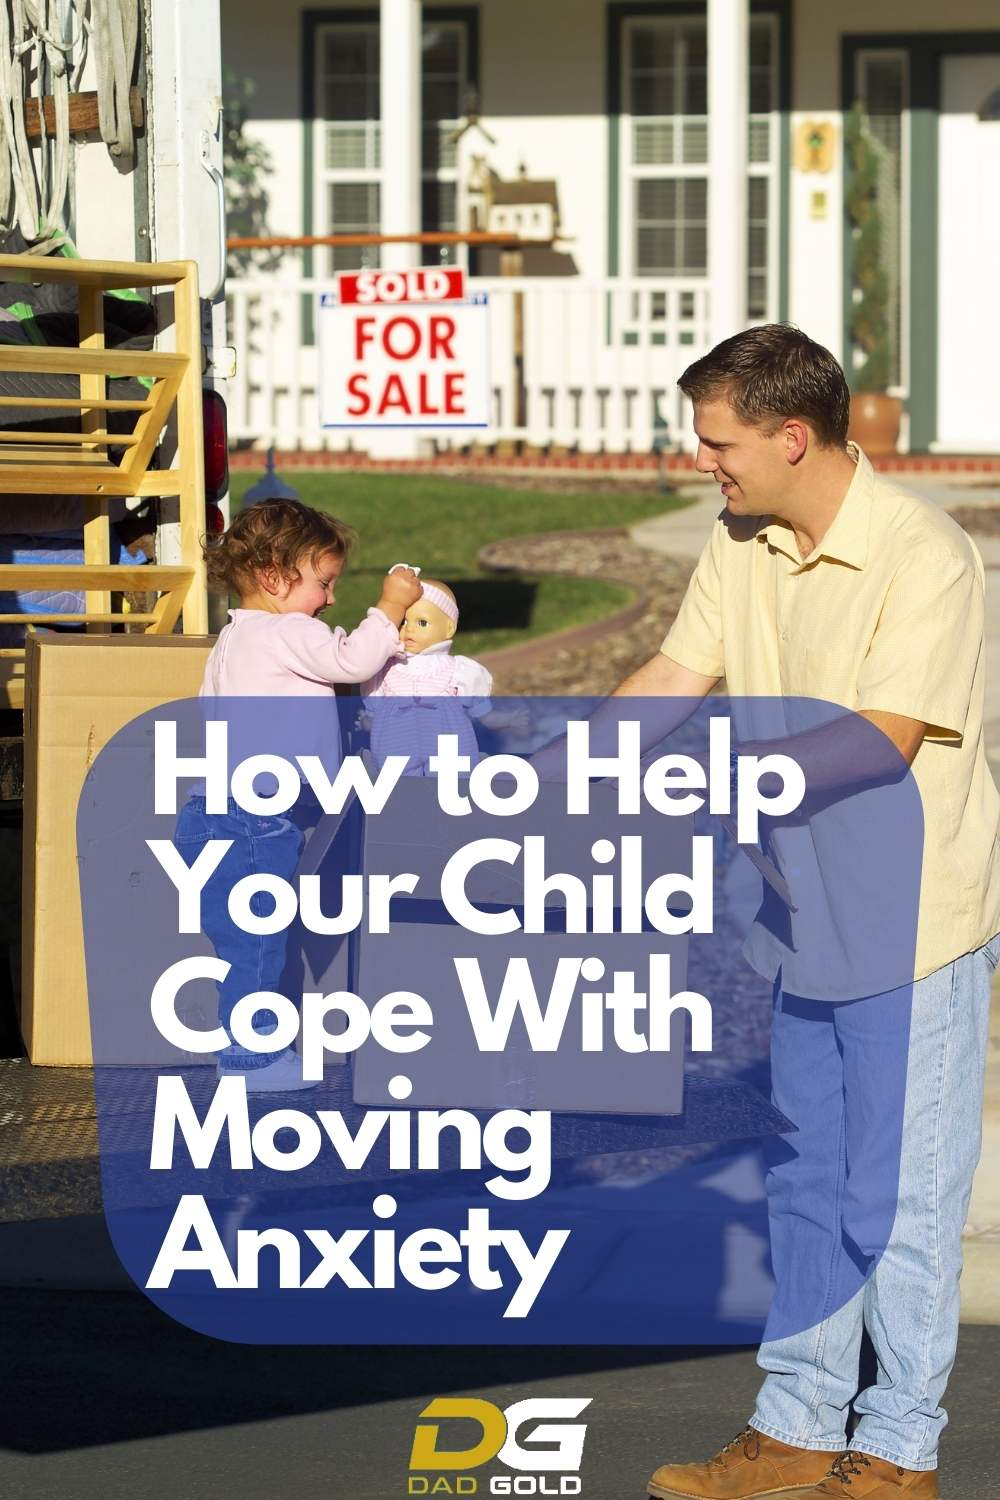 How to Help Your Child Cope With Moving Anxiety